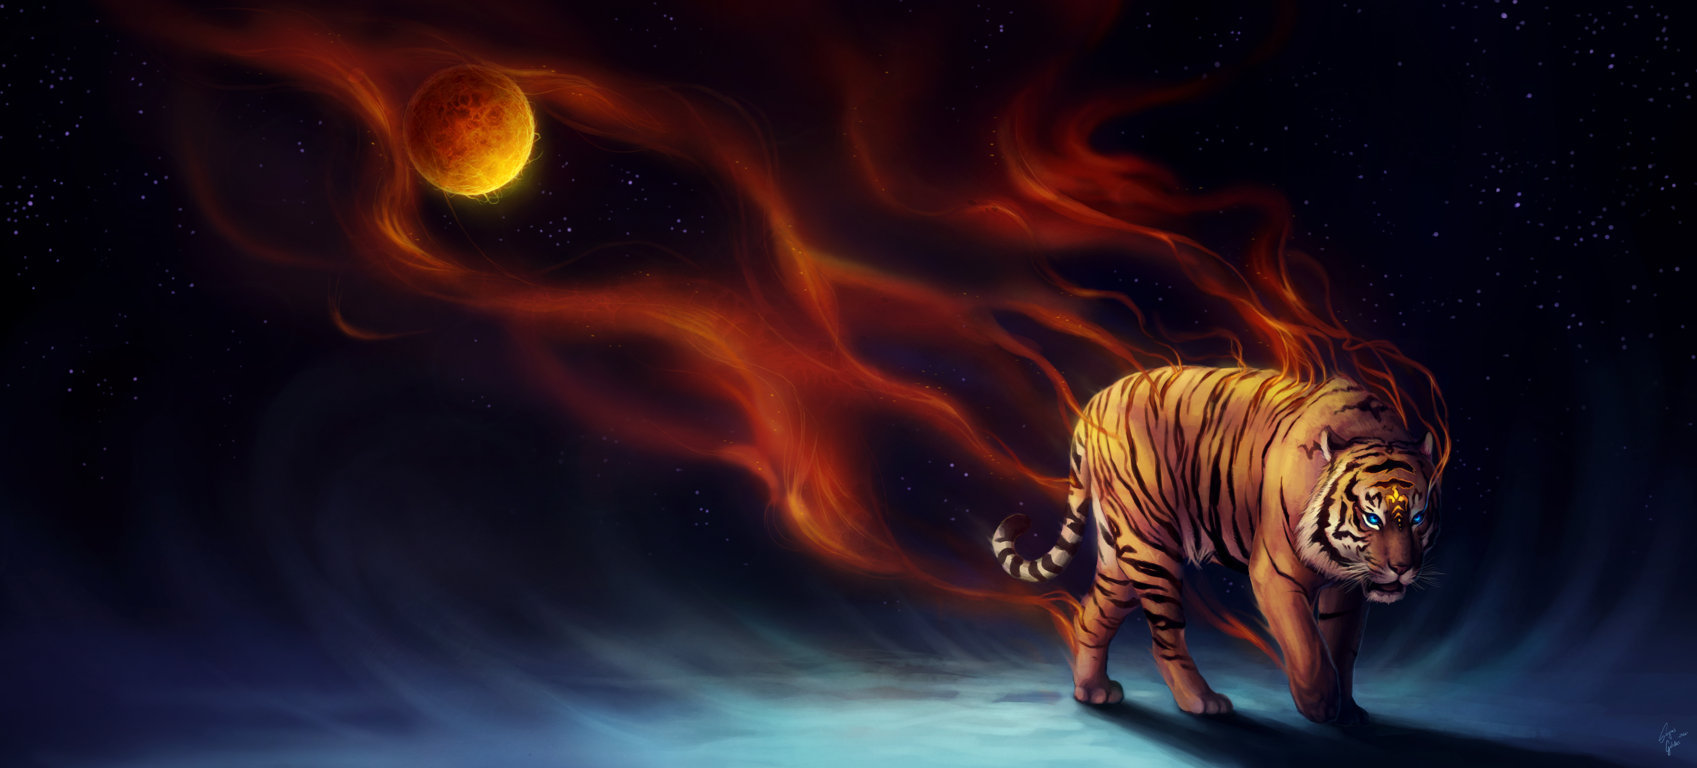 Little Tigers Image Little Wallpaper Hd Wallpapers Tigers